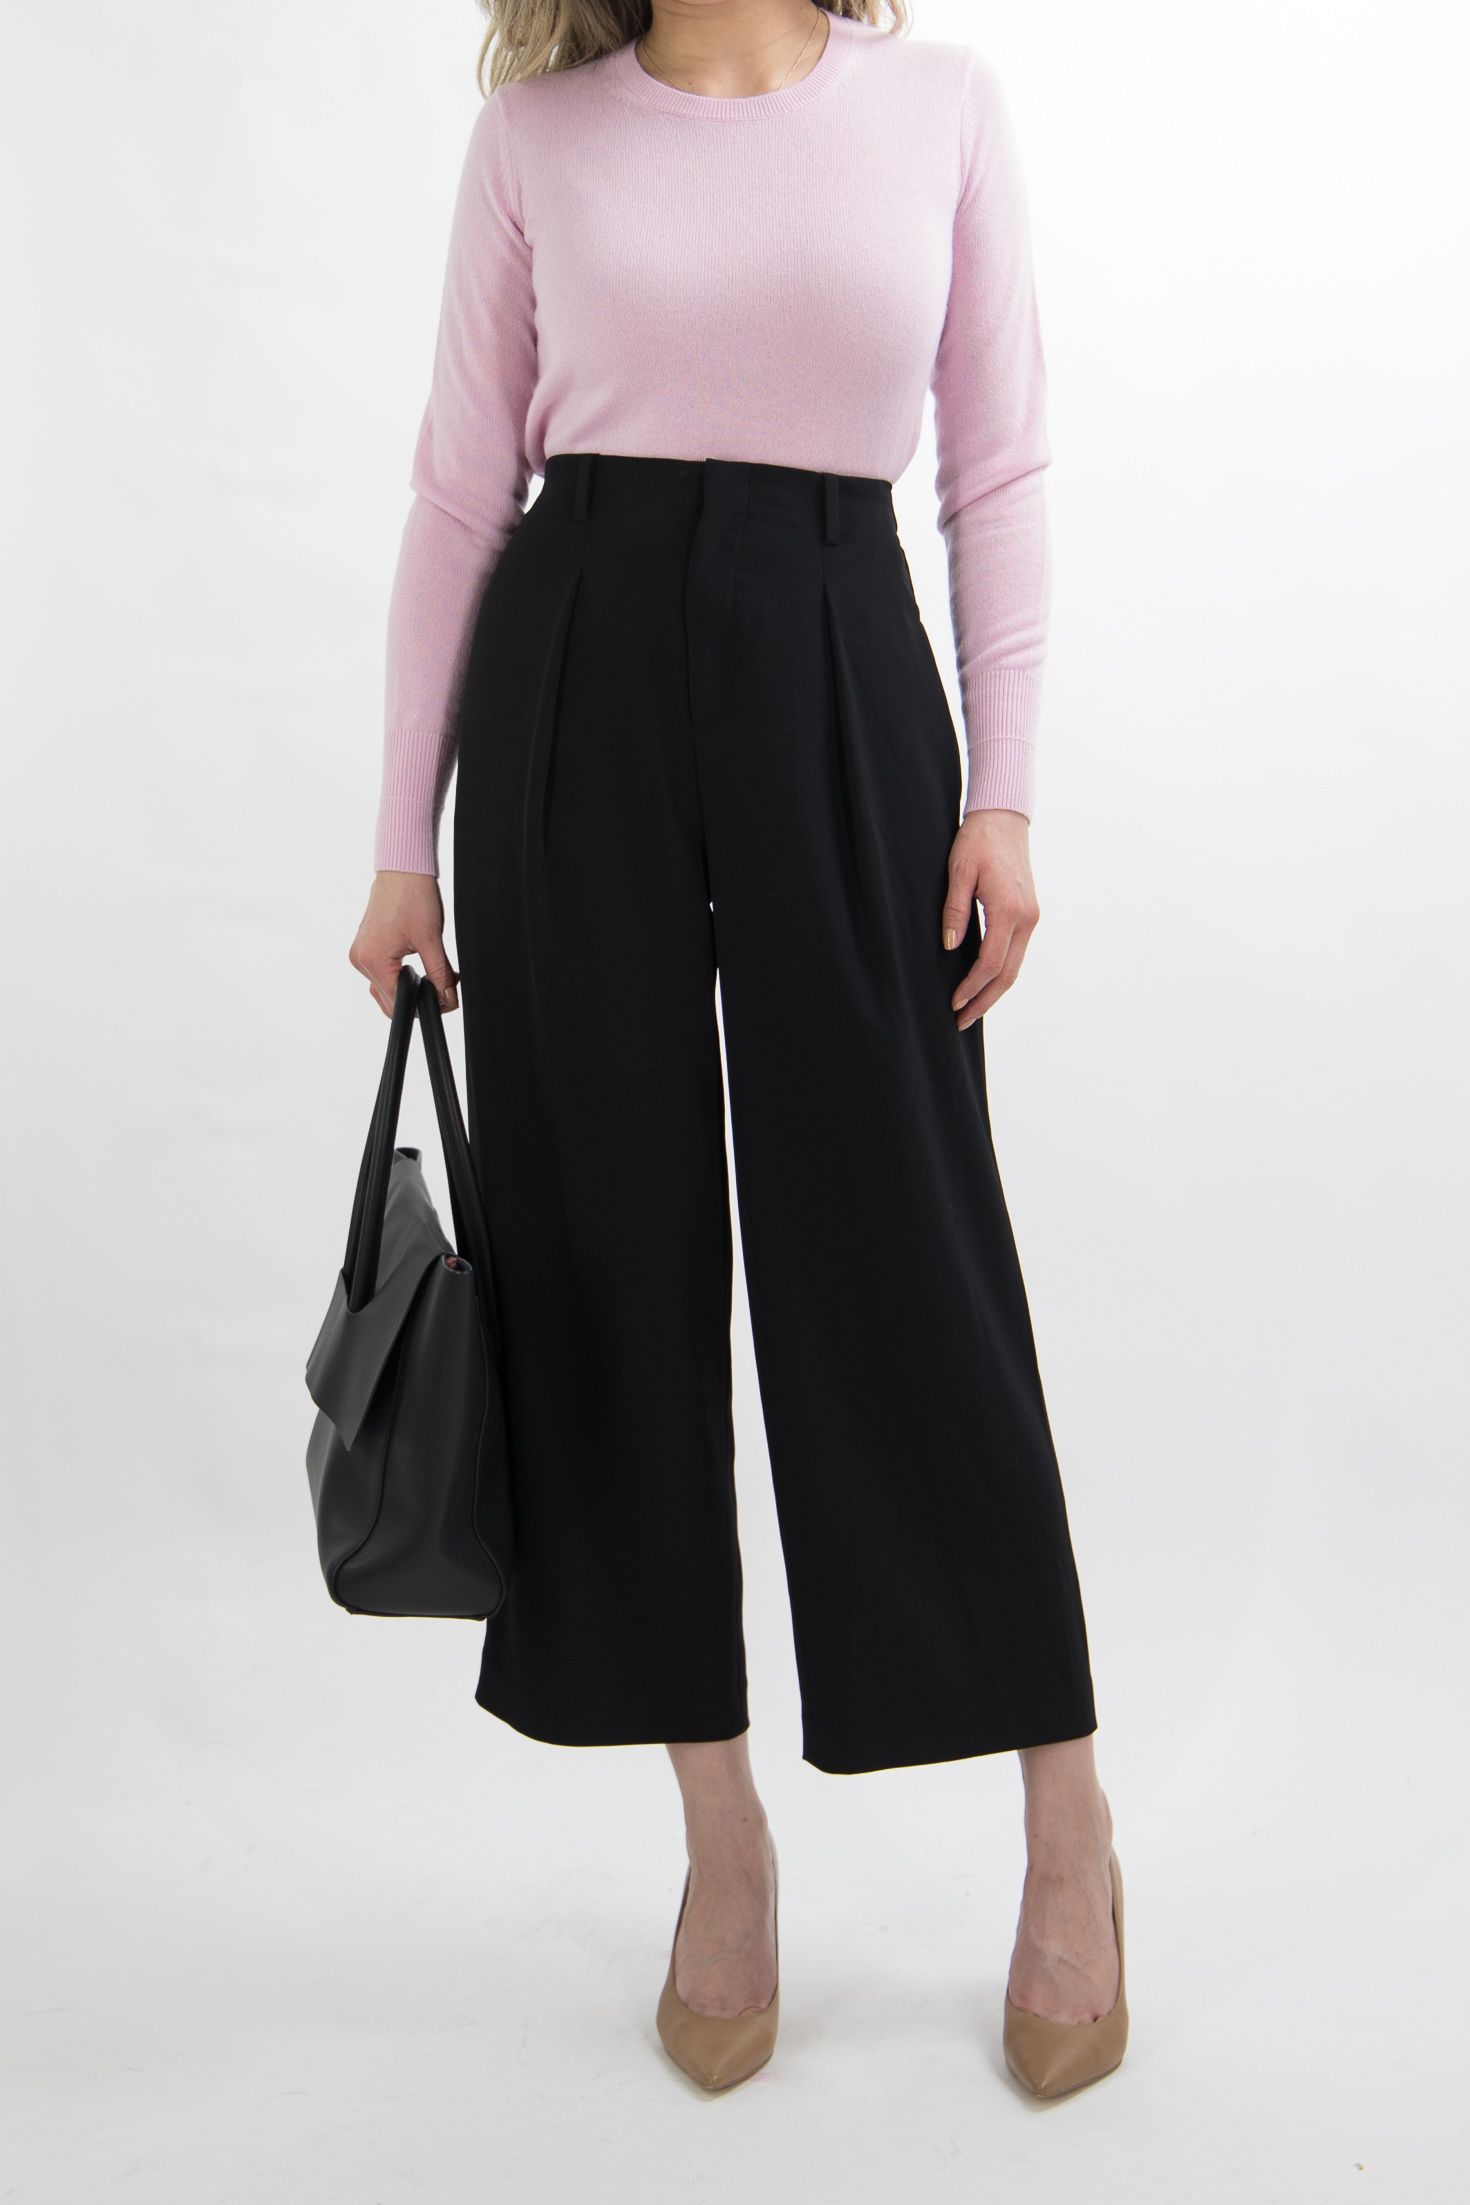 bf9ee30622d Culottes Outfit Work Office Wear for Women  1 MONTH OF BUSINESS CASUAL  OUTFIT IDEAS Pt. 2 MISS LOUIE